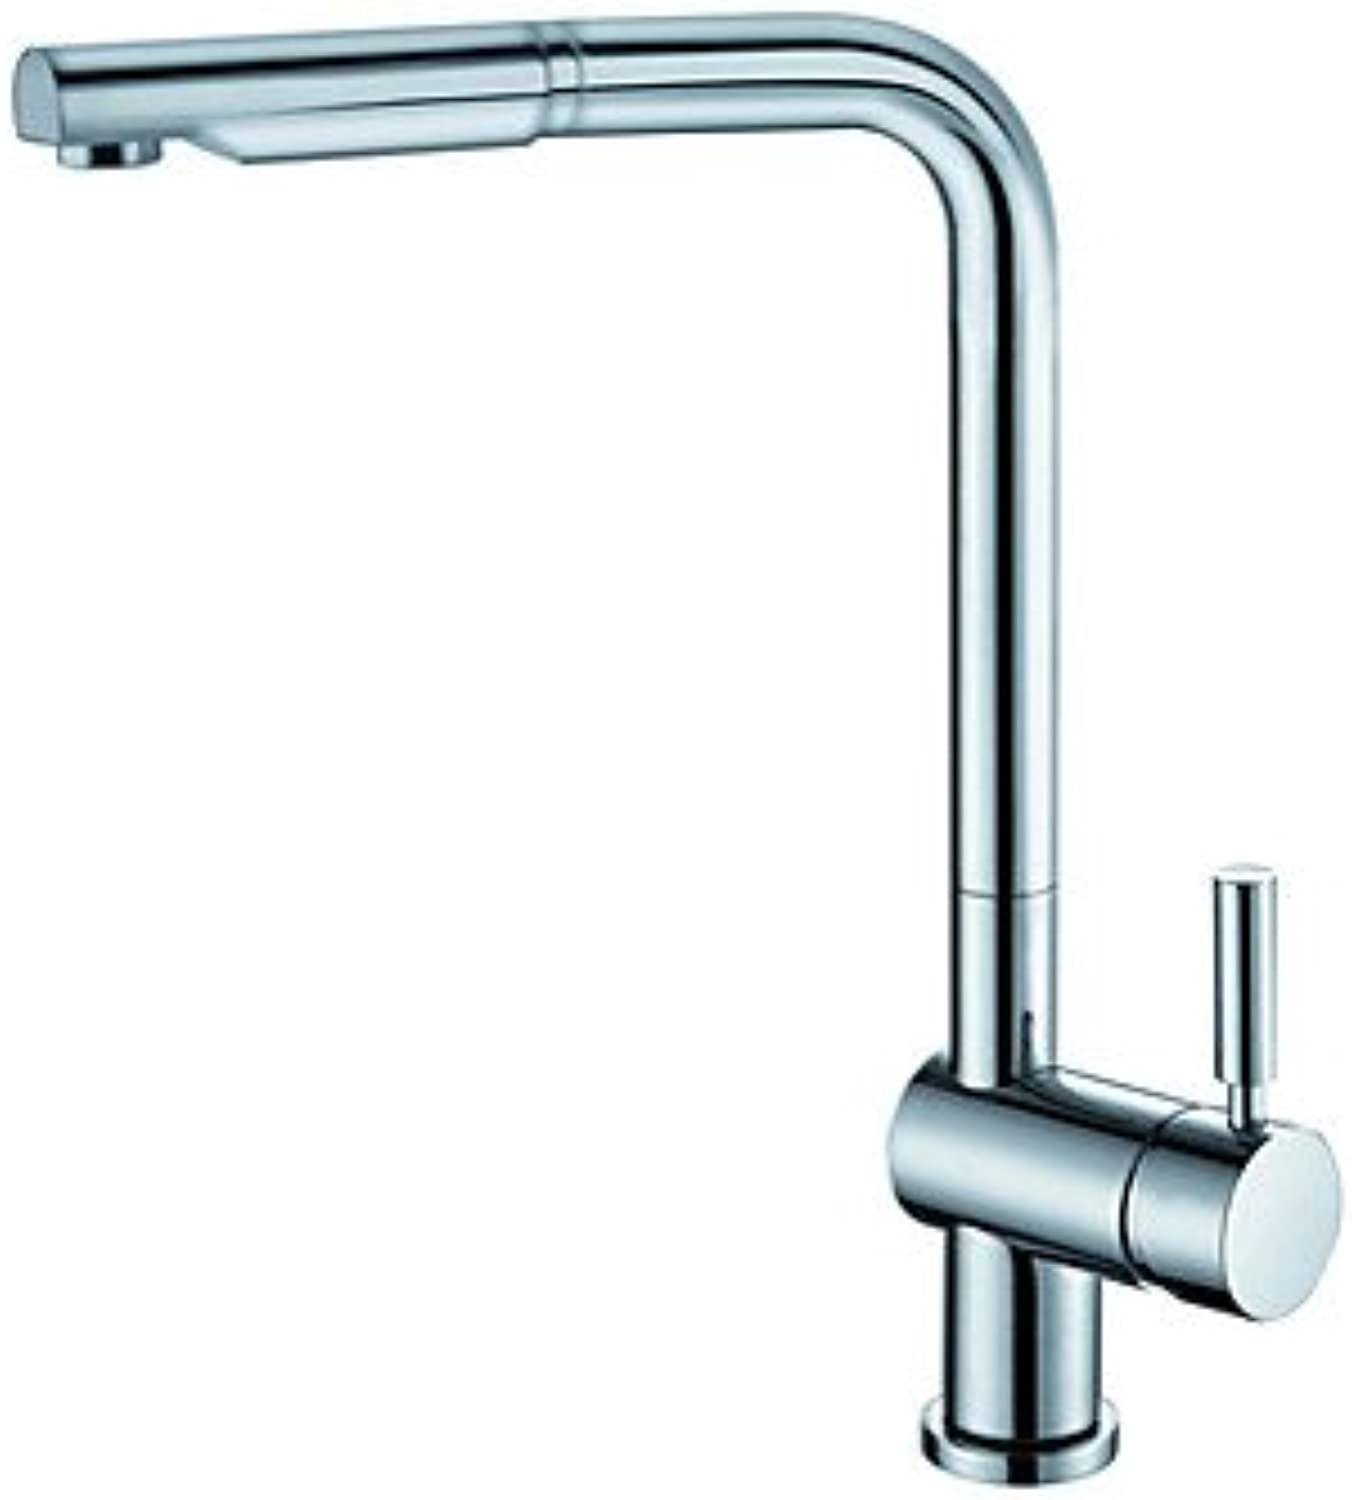 SUNNY KEY-Kitchen Sink Taps@American Standard Deck Mounted Single Handle One Hole with Chrome Kitchen Faucet